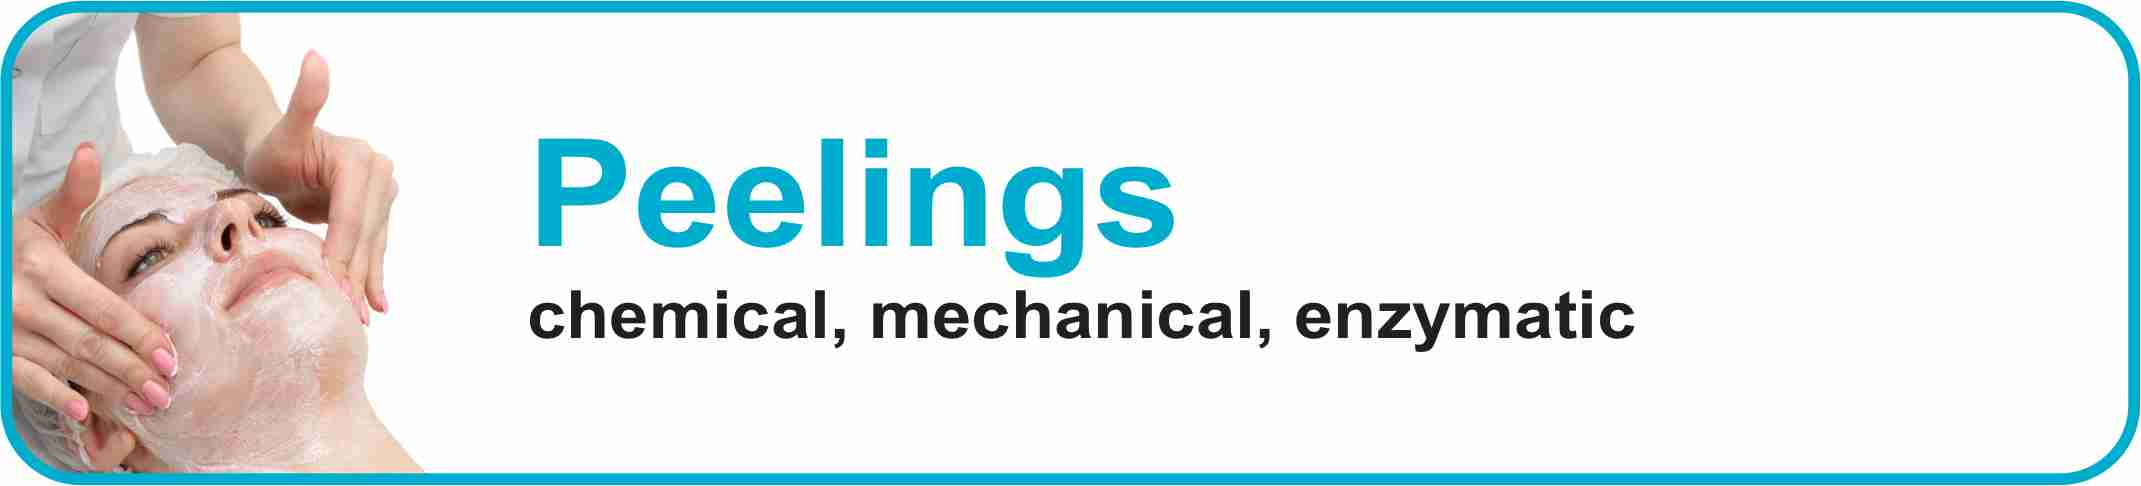 peelings-catalogs